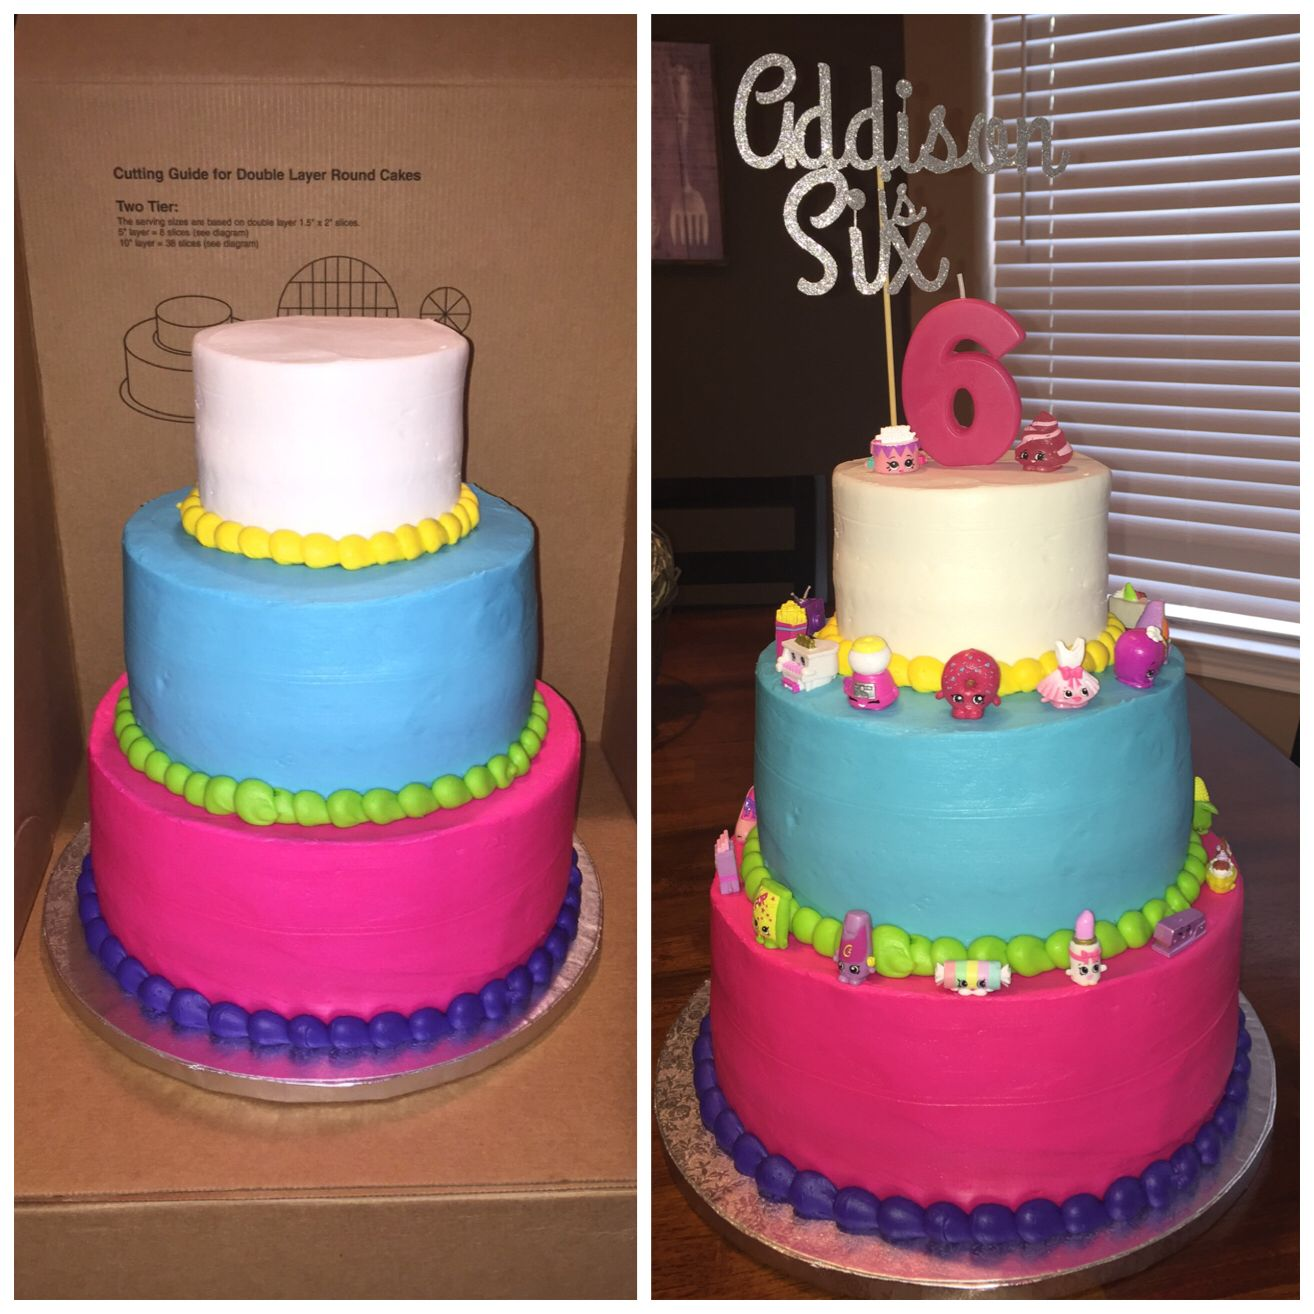 Sams Club Cake Design Book : Shopkins Cake. Ordered 3 tiered cake from Sam s club and ...